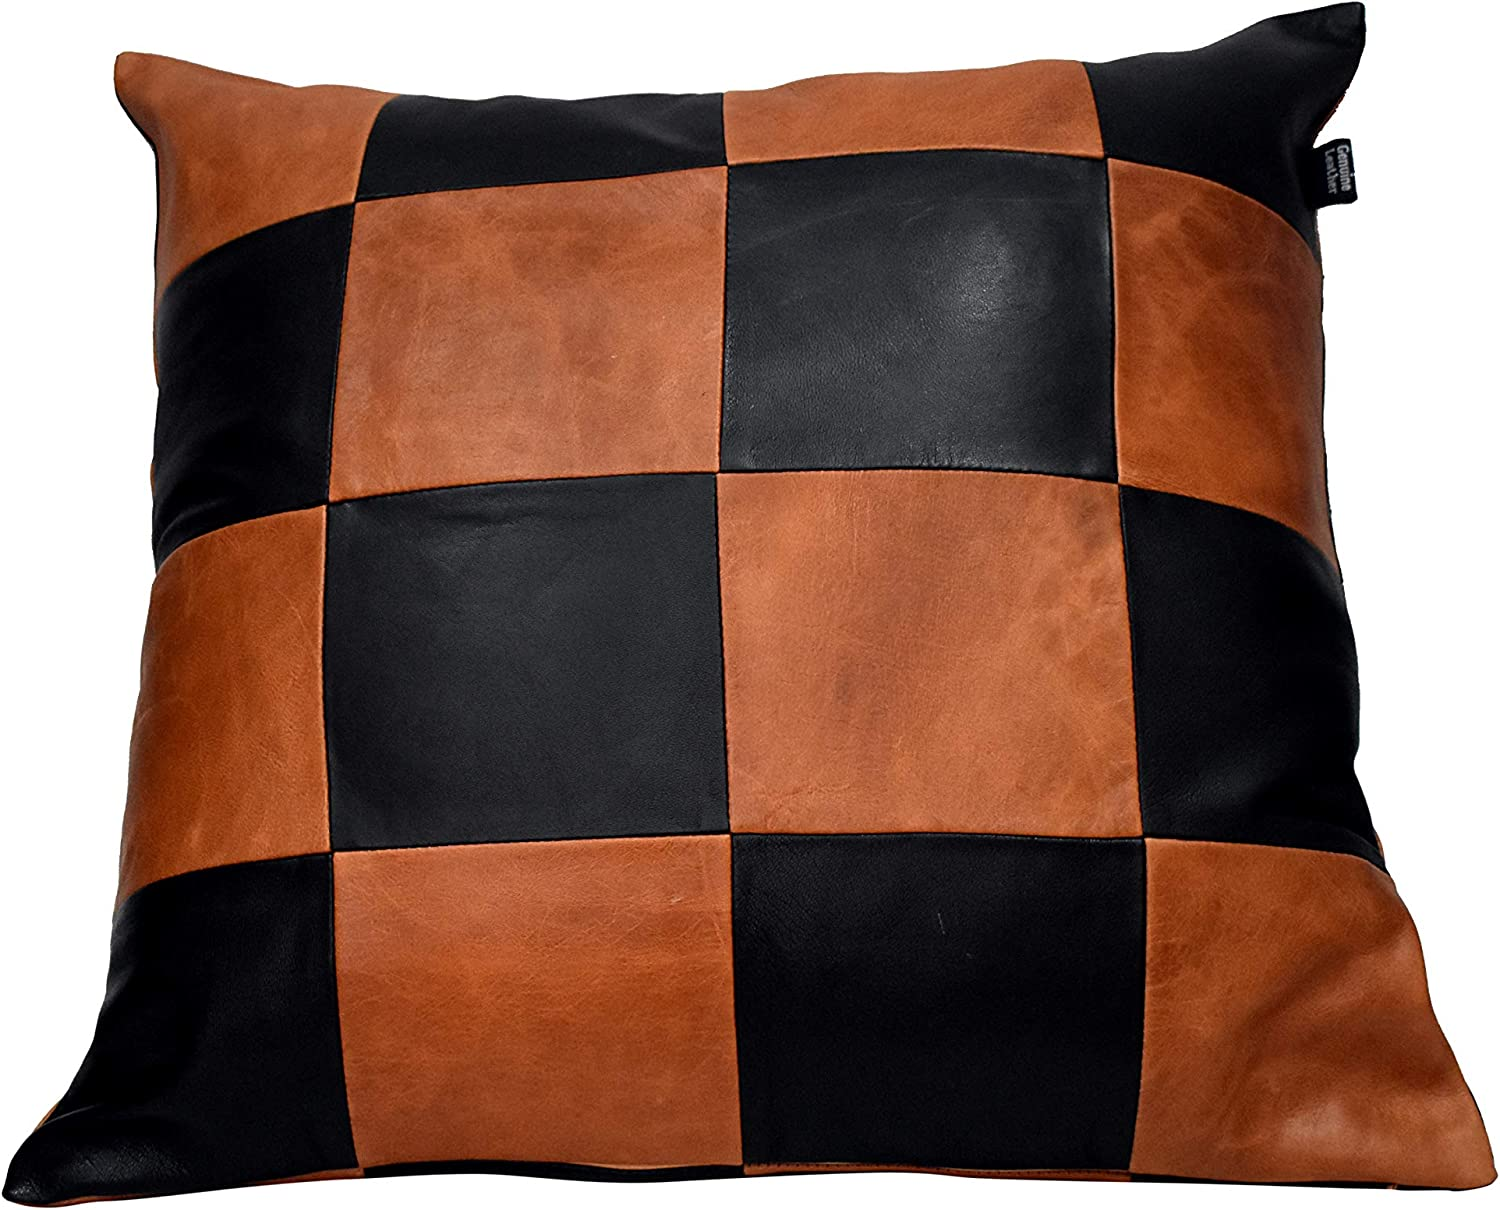 LL LEATHER unisex LOVERS 100% Lambskin Leather Sofa - Cush Cover 35% OFF Pillow